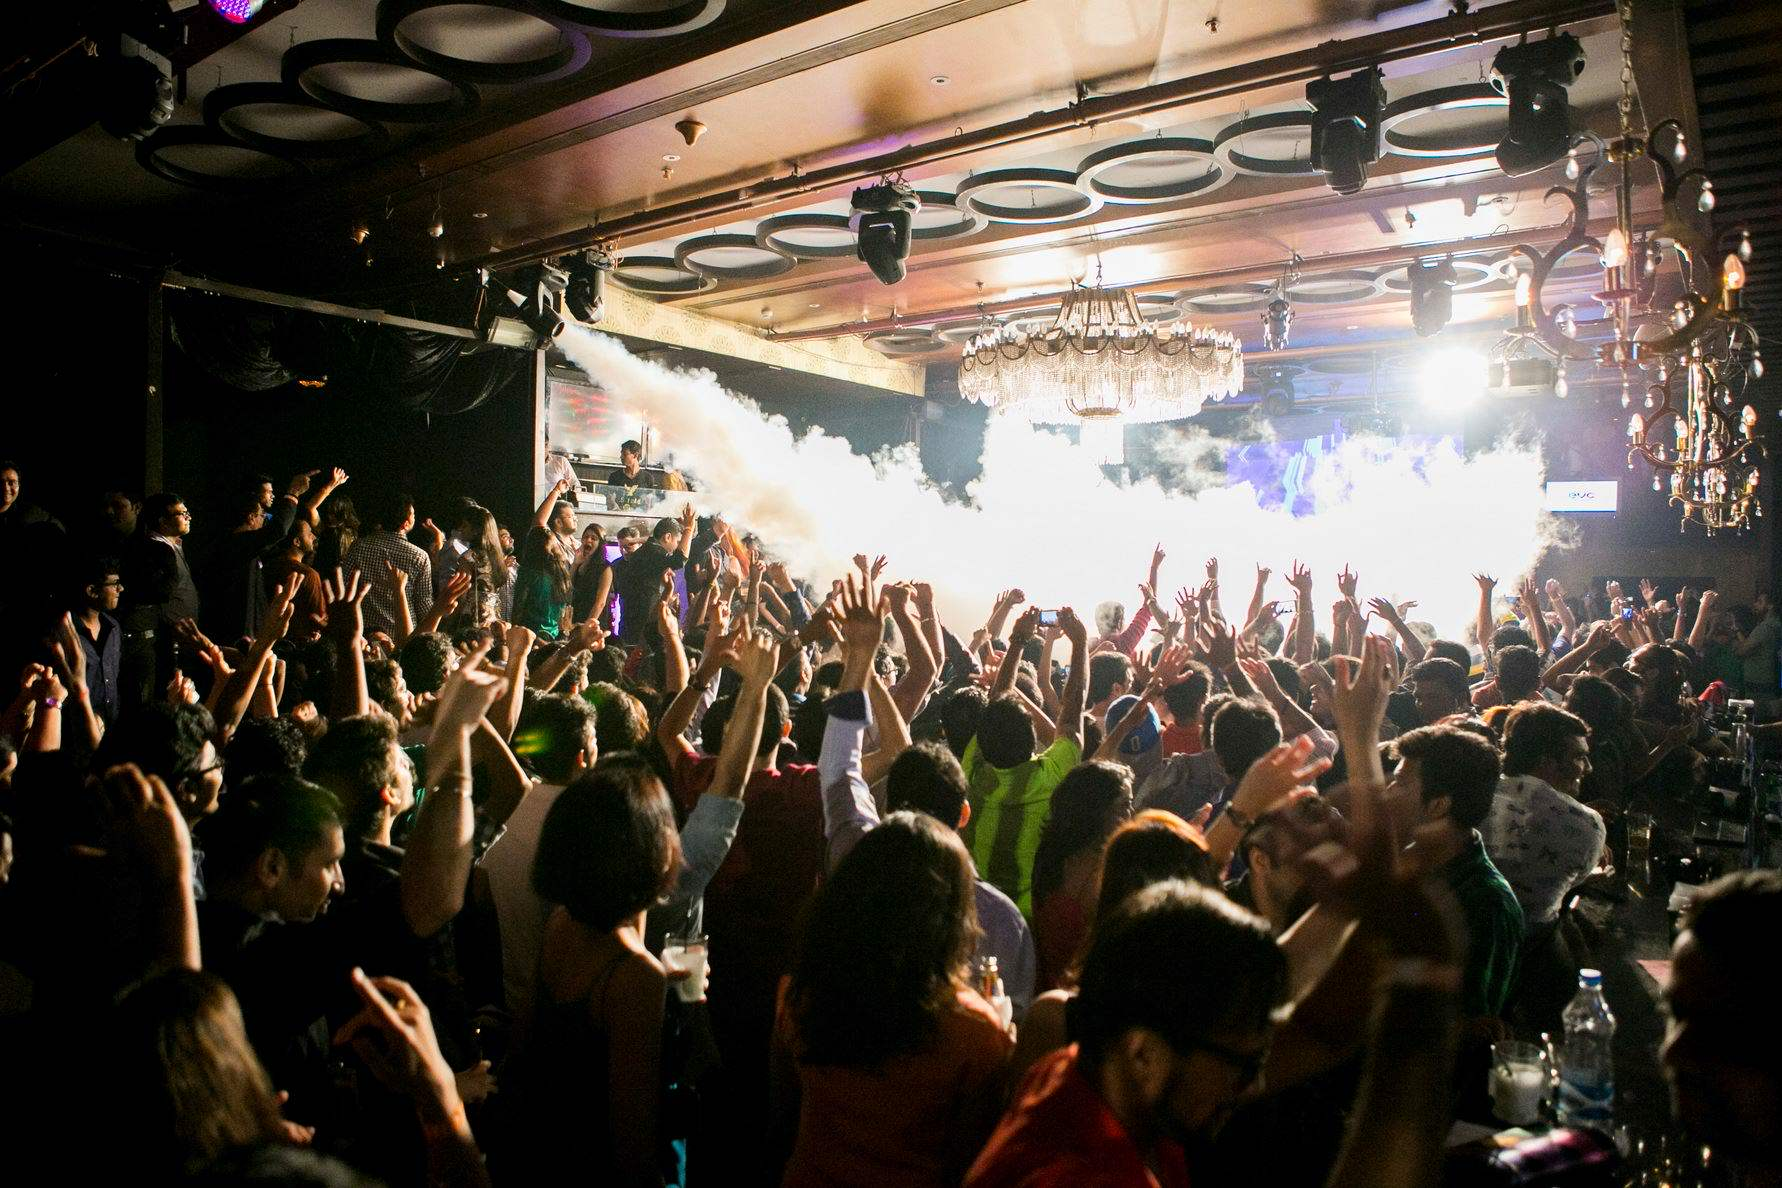 hook up clubs in mumbai 12 places where we indians hook up with new dates by harshit gupta october 6, 2014 we indians have this innate ability to take any accepted norm the world over and truly 'desi'fy it in our own way.